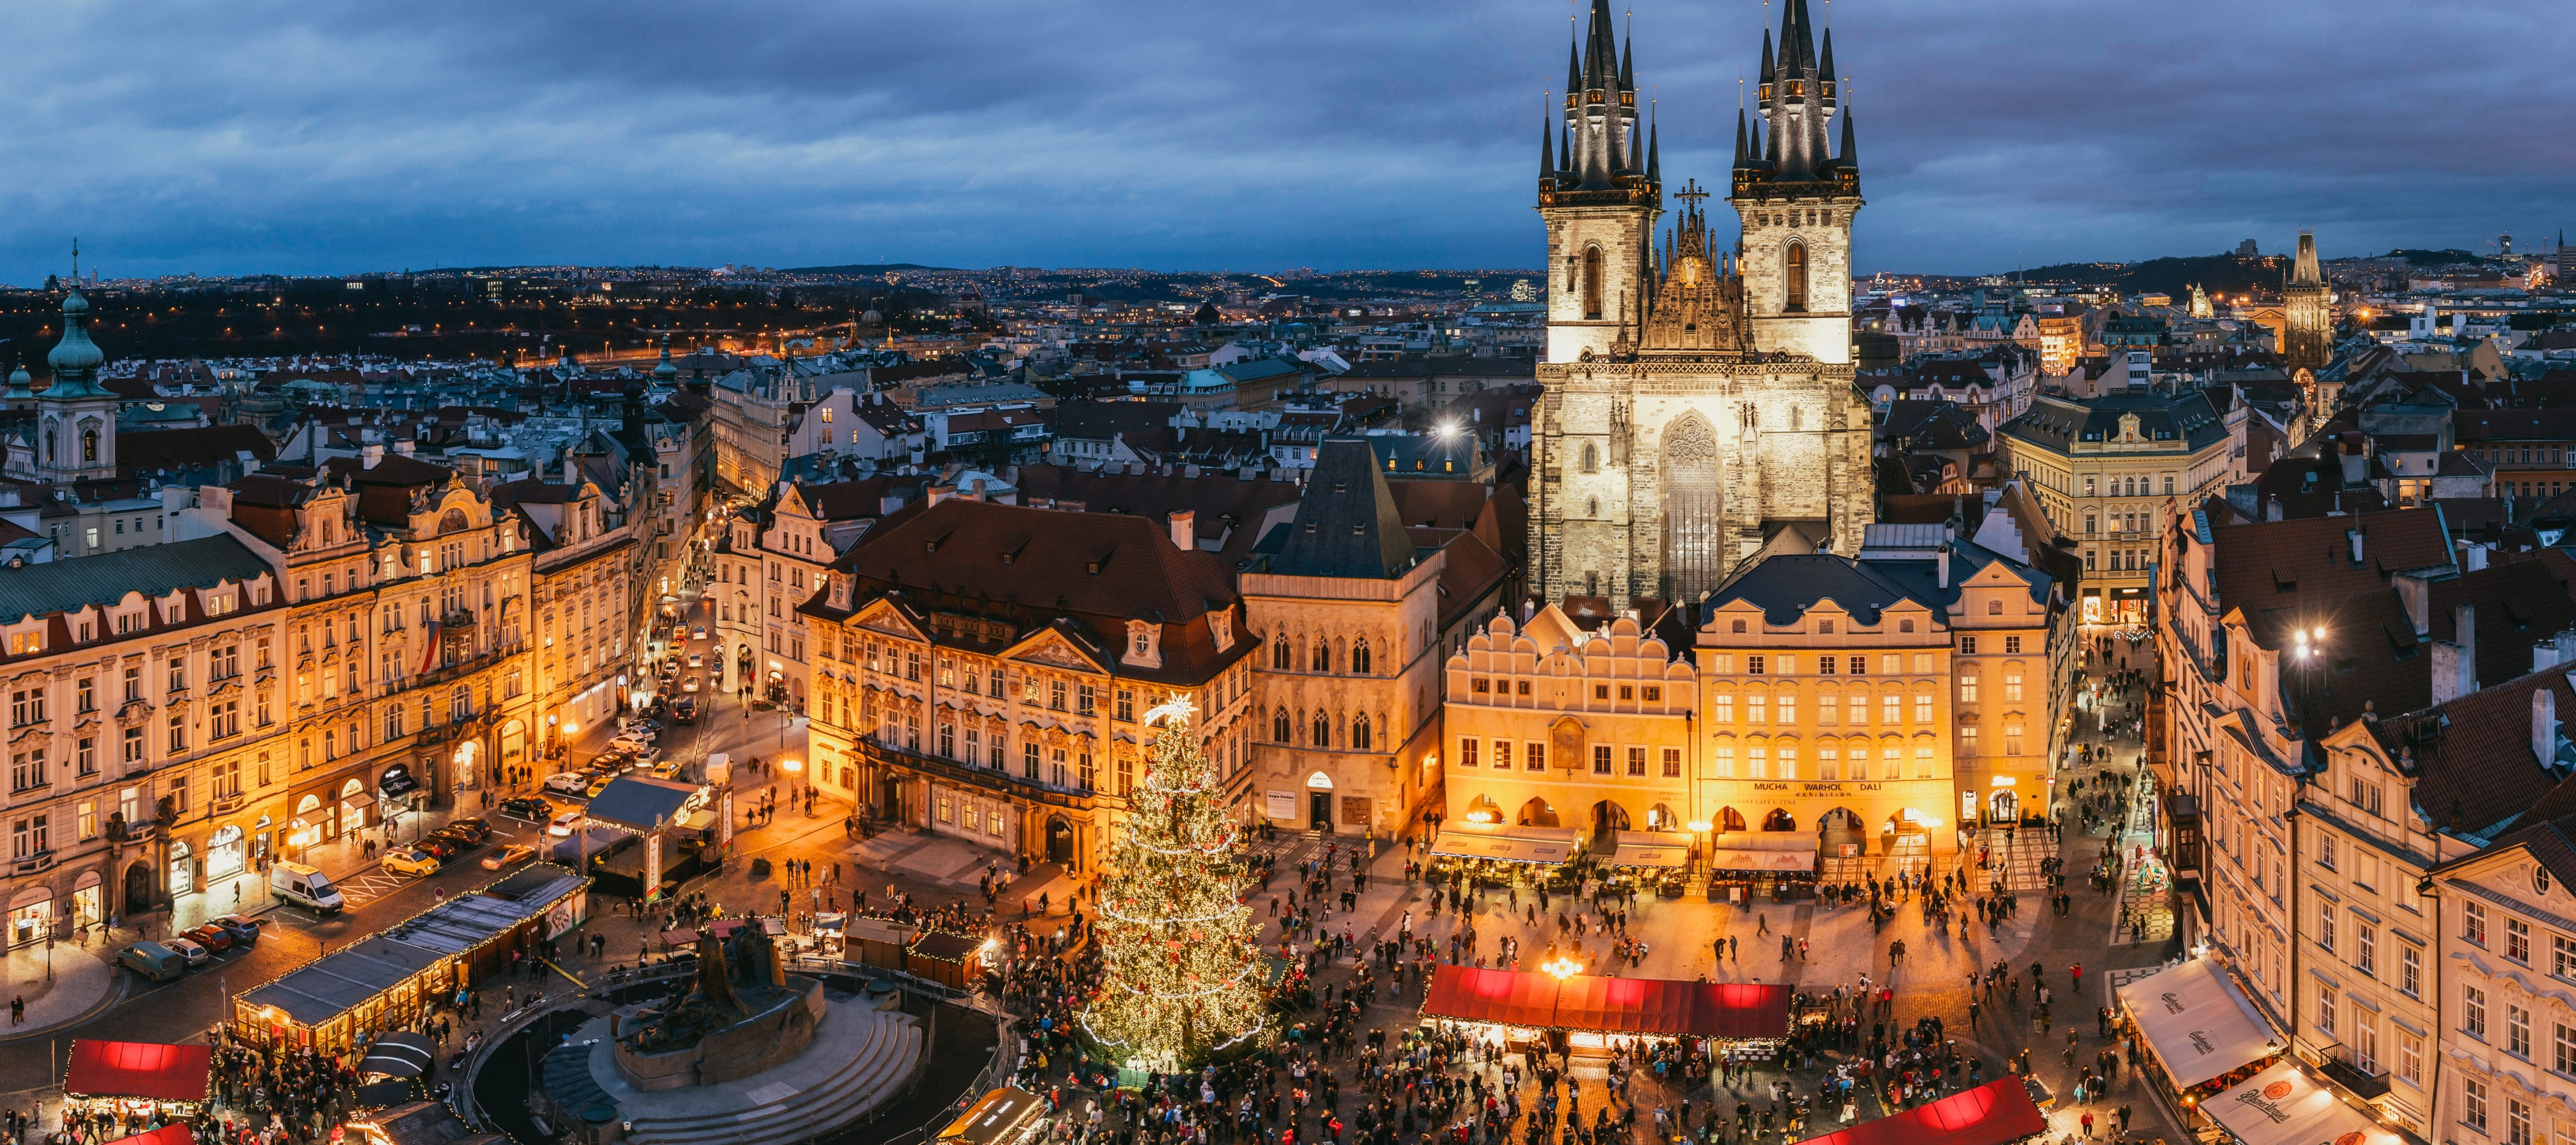 Making the most of Christmas in fairytale Prague